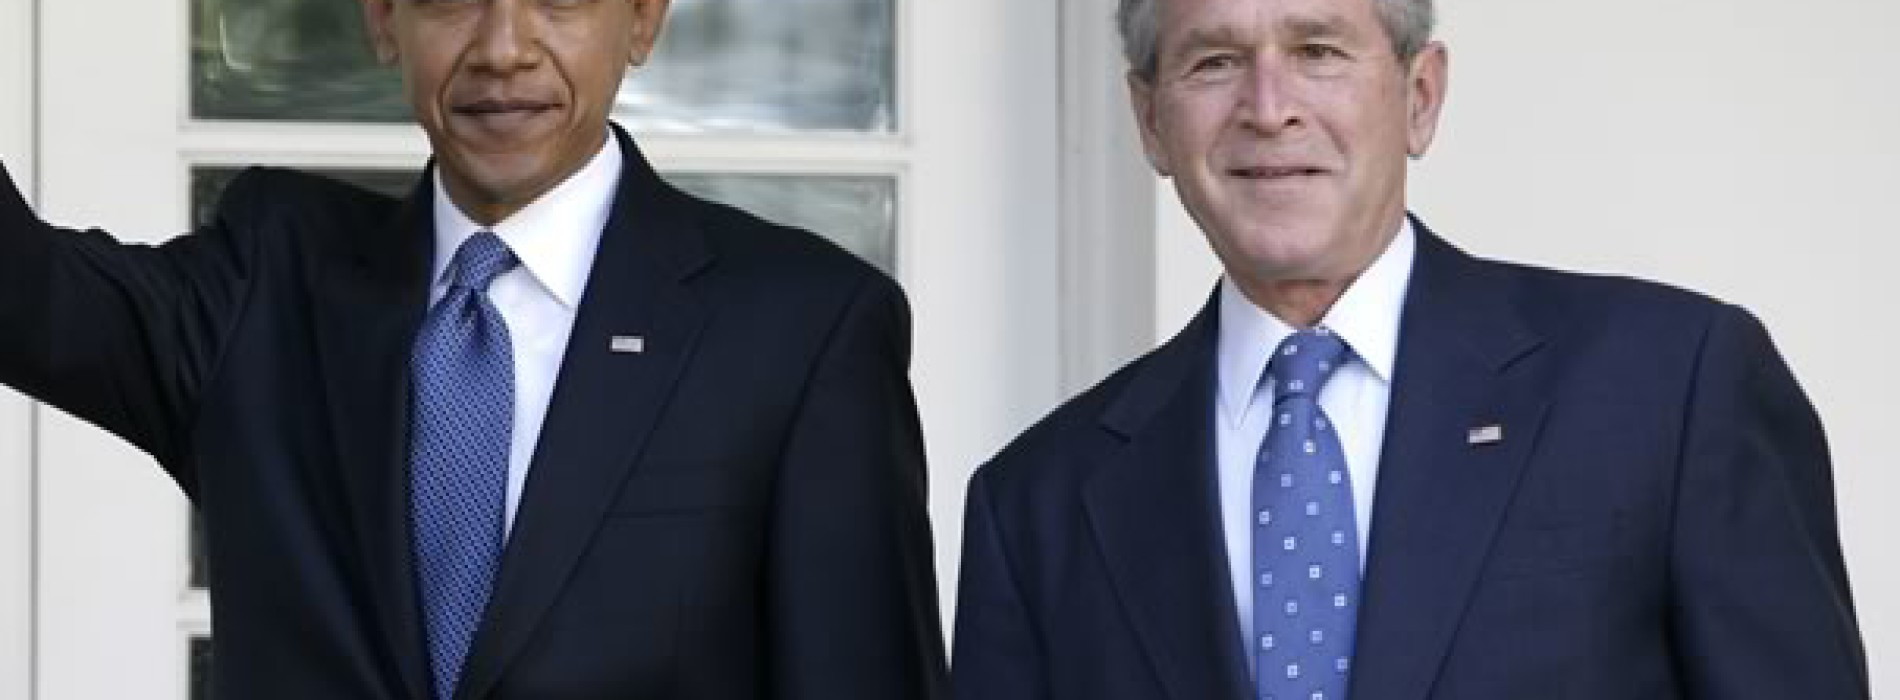 george w bush barack obama Obama shares the best advice he received from president george w bush face the nation  george w bush on donald trump, michelle obama,  barack obama comes out swinging as donald trump.